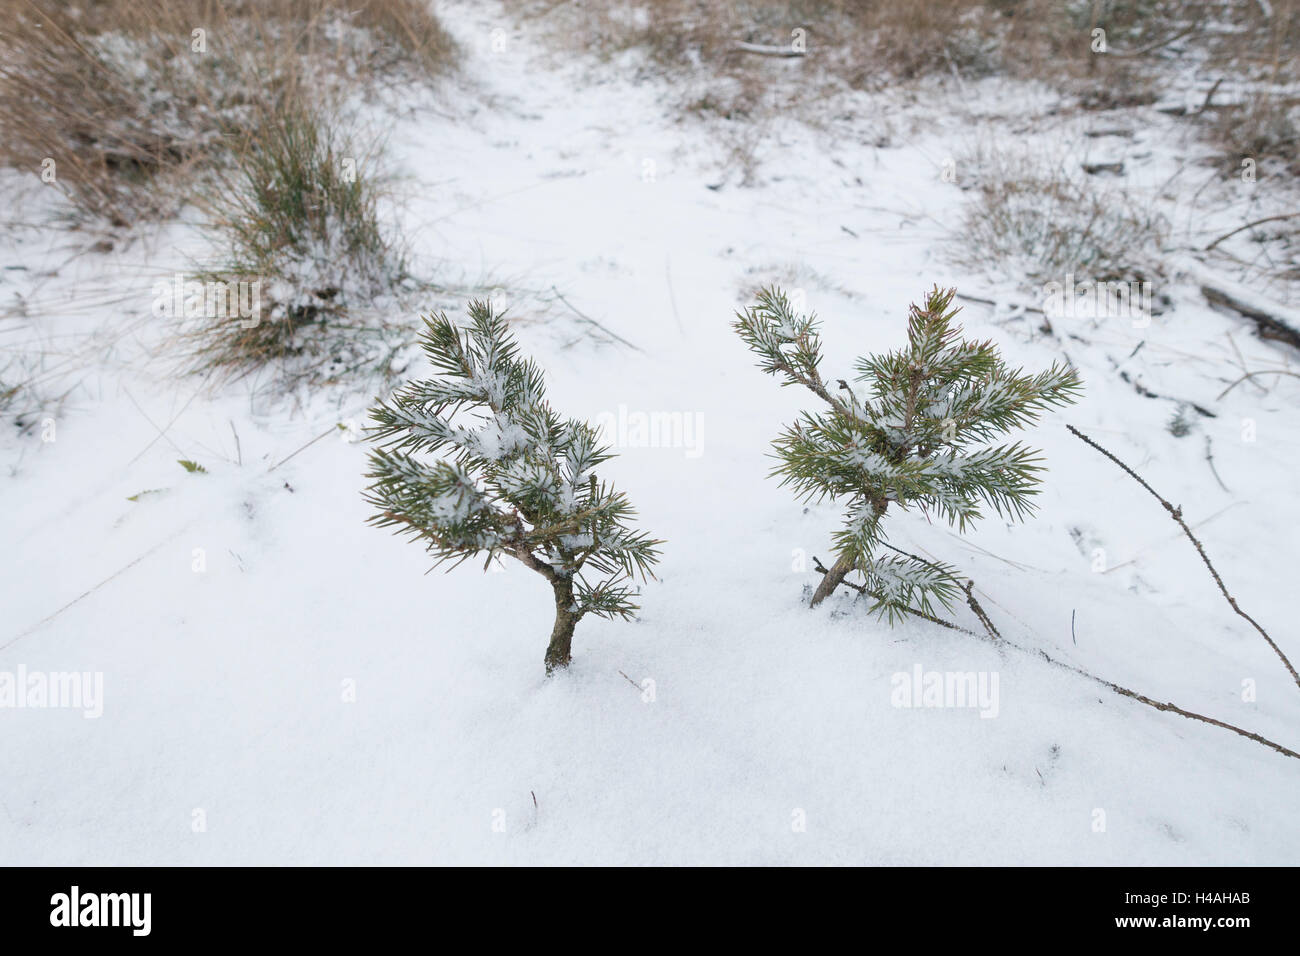 two young spruces in the snow - Stock Image